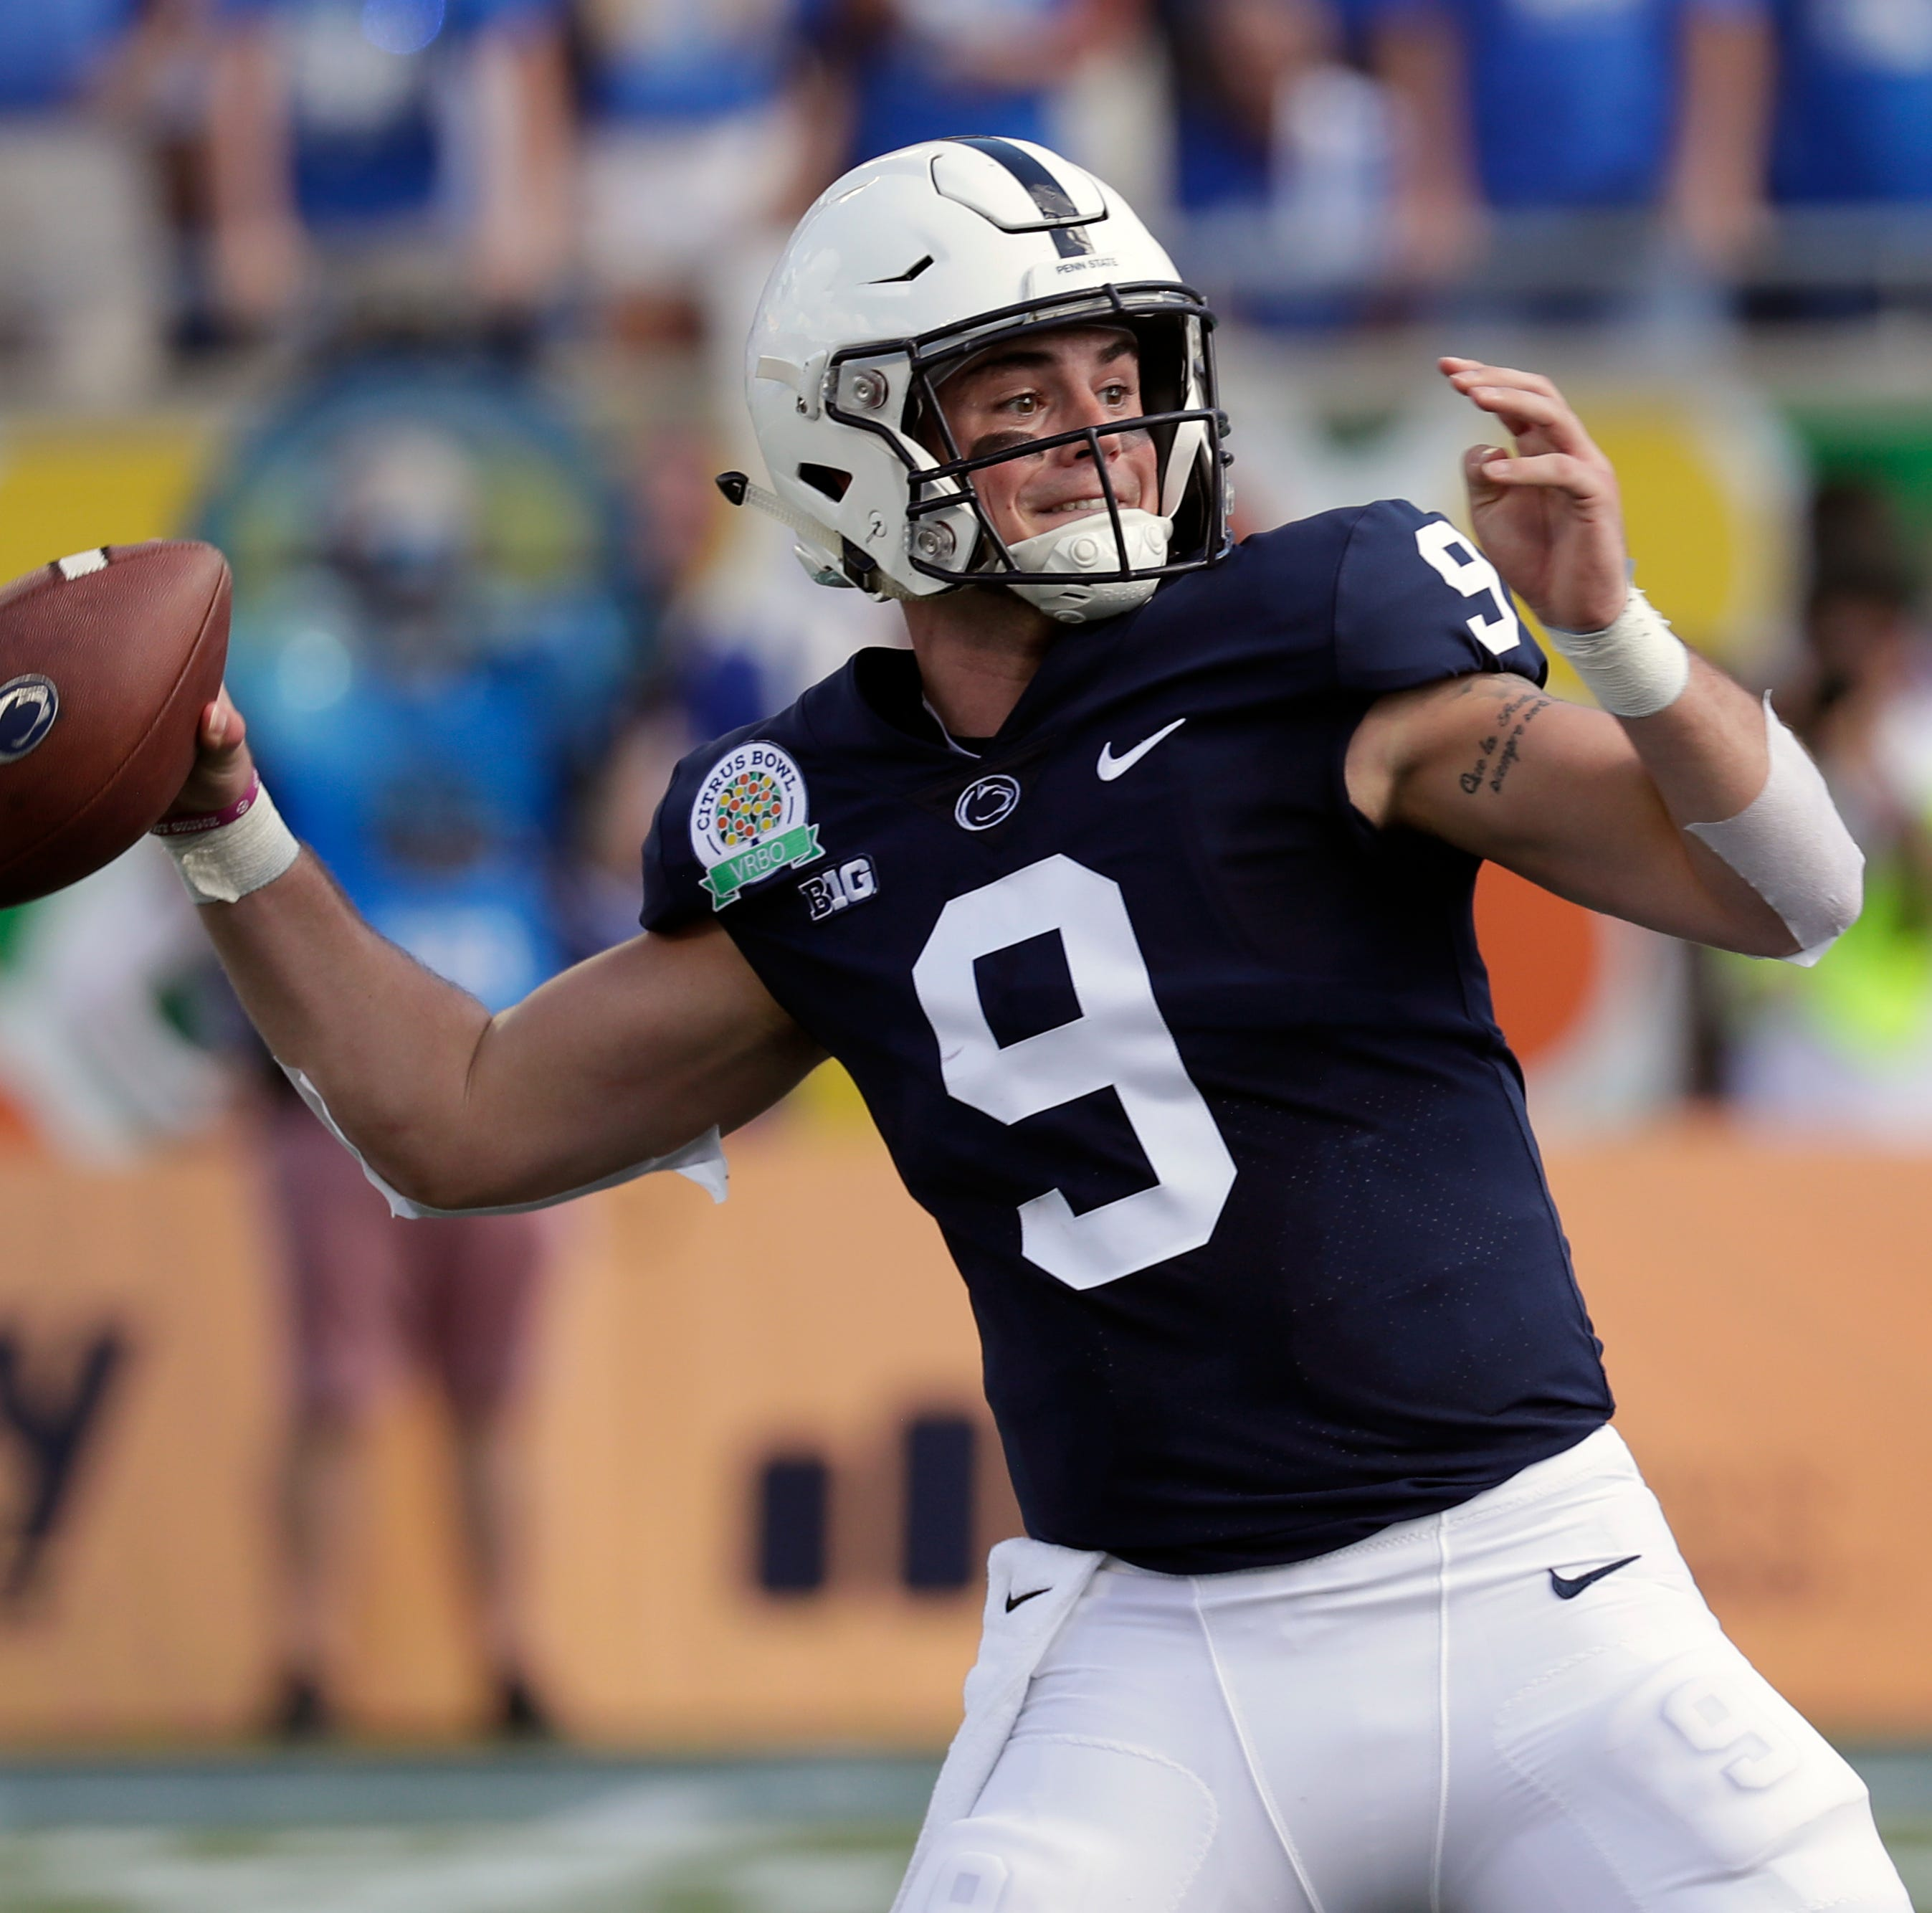 NFL Draft 2019 recap: Where did Penn State Nittany Lions end up?